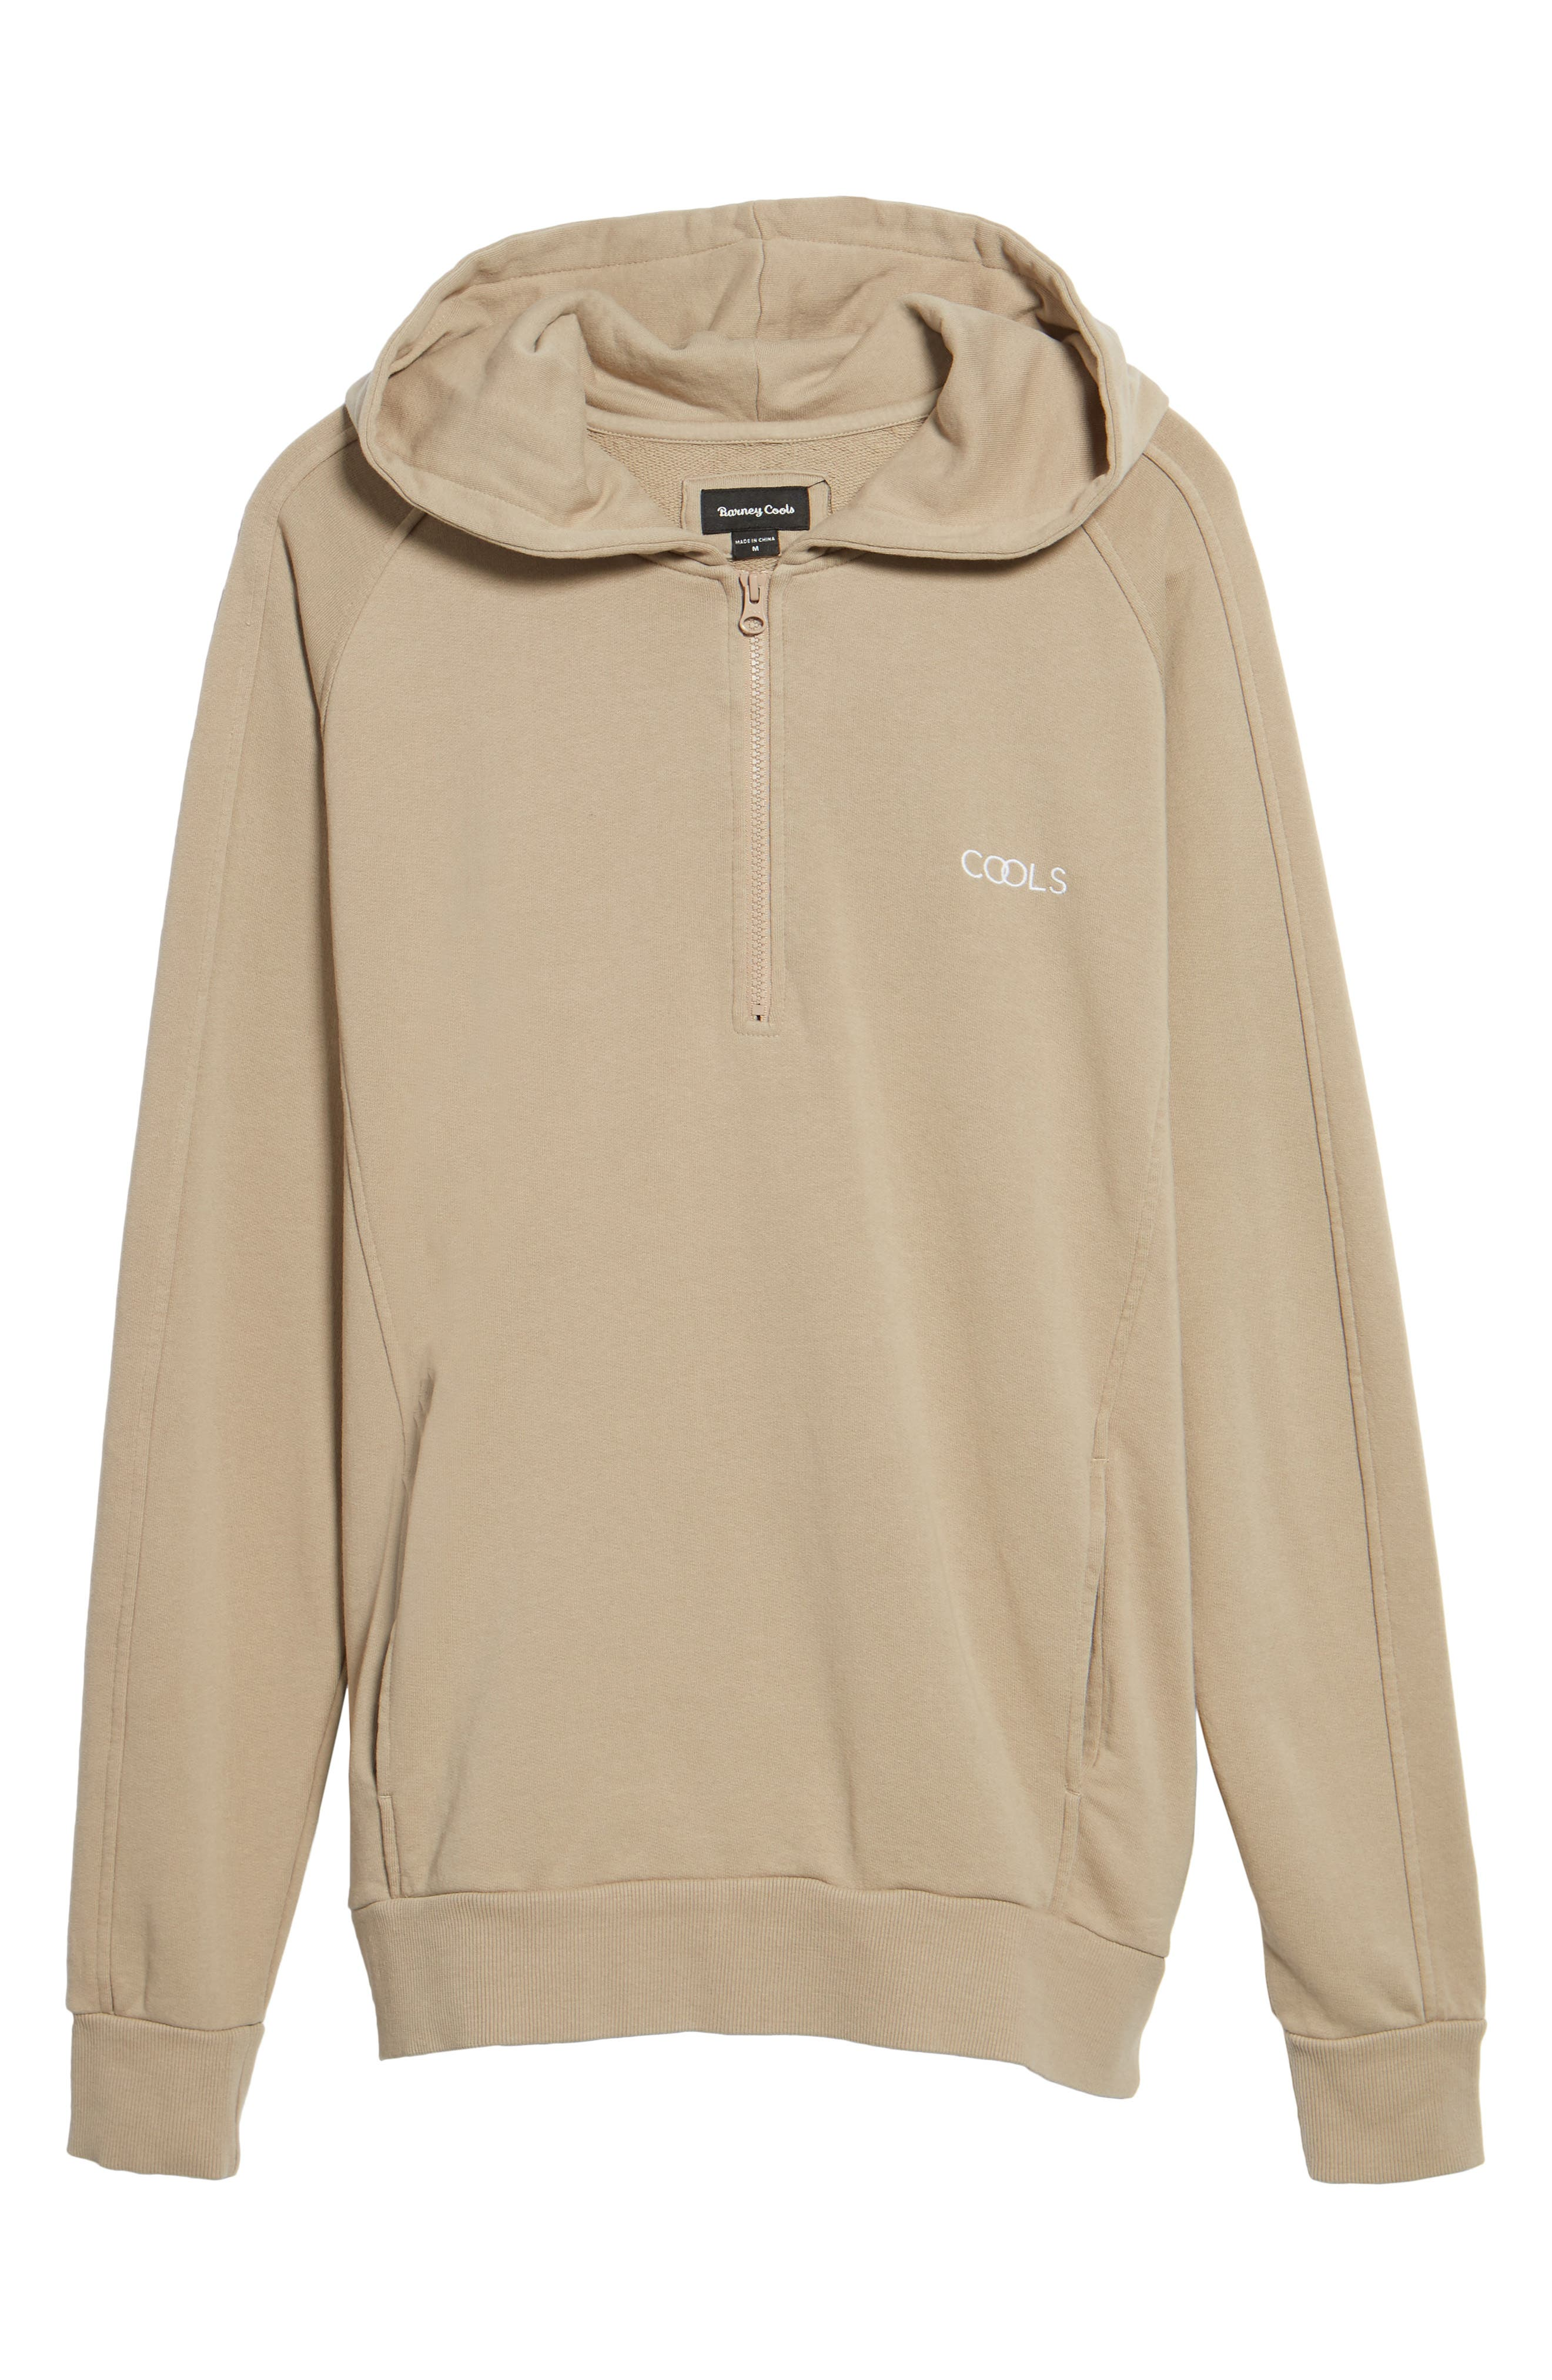 Olympic Zip Pullover Hoodie,                             Alternate thumbnail 6, color,                             260